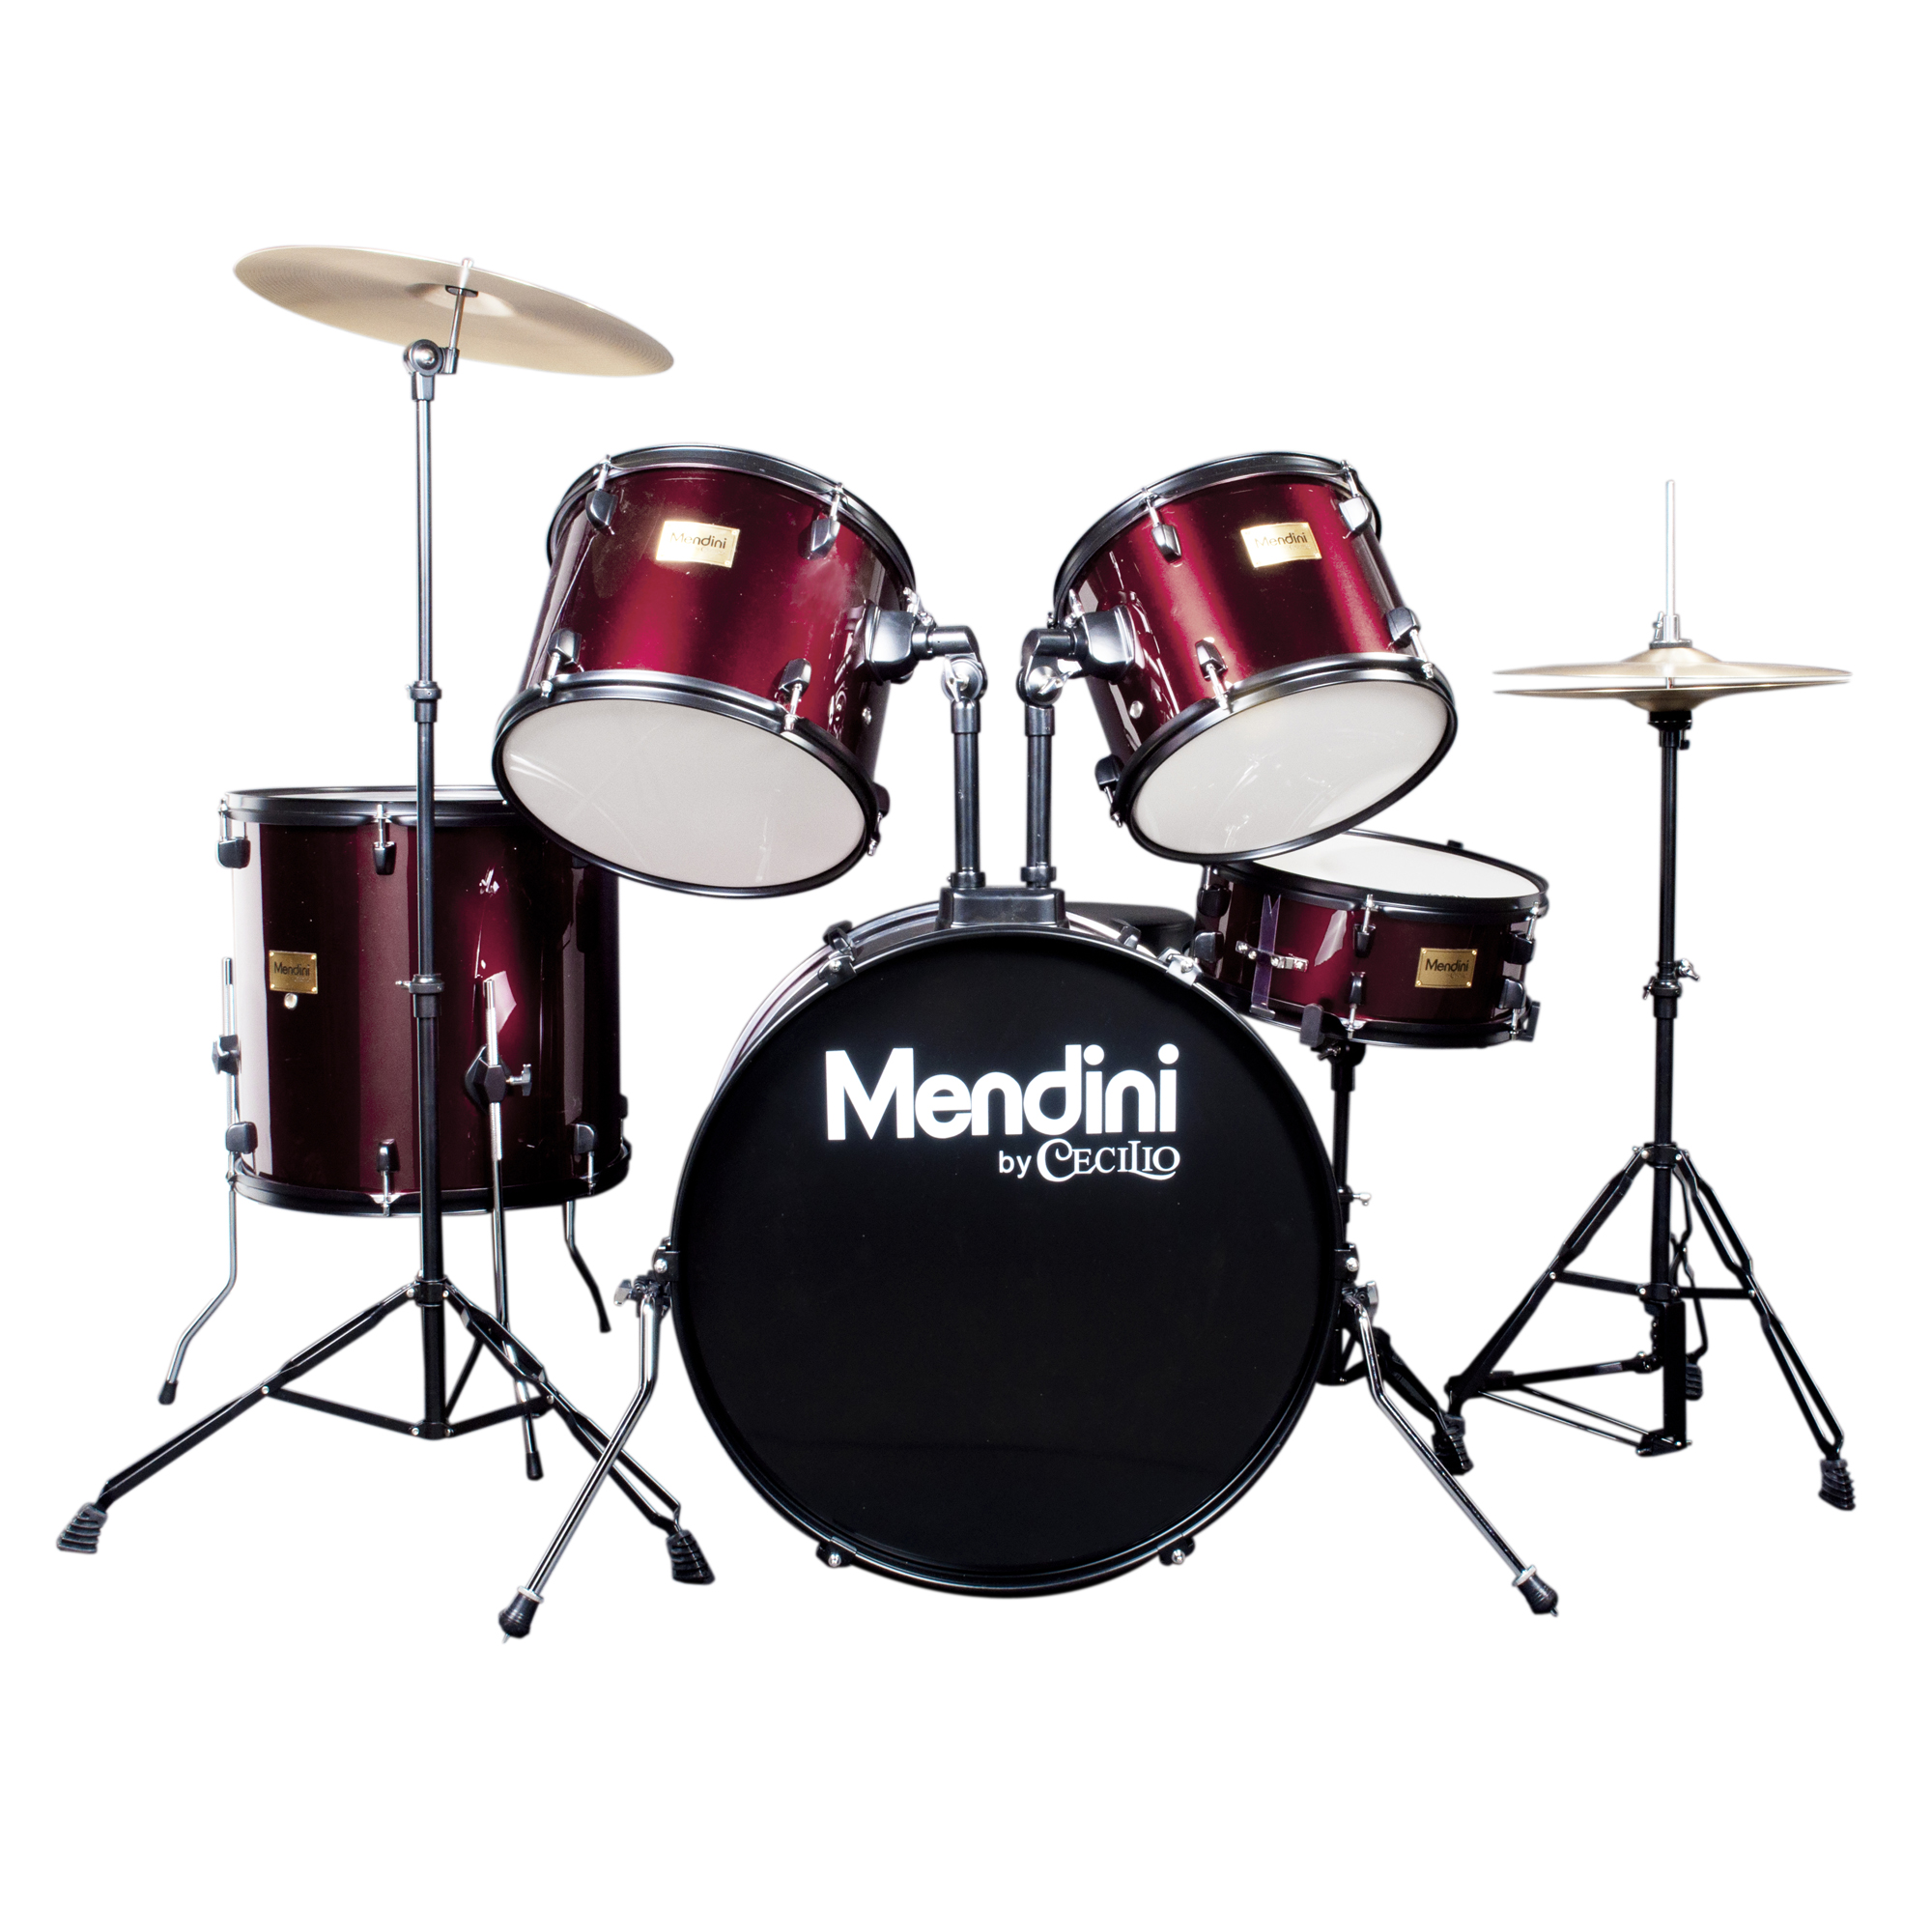 Mendini by Cecilio Complete Full Size 5-Piece Adult Drum Set w/ Cymbals Pedal Throne Sticks ,Metallic Wine Red MDS80-WR